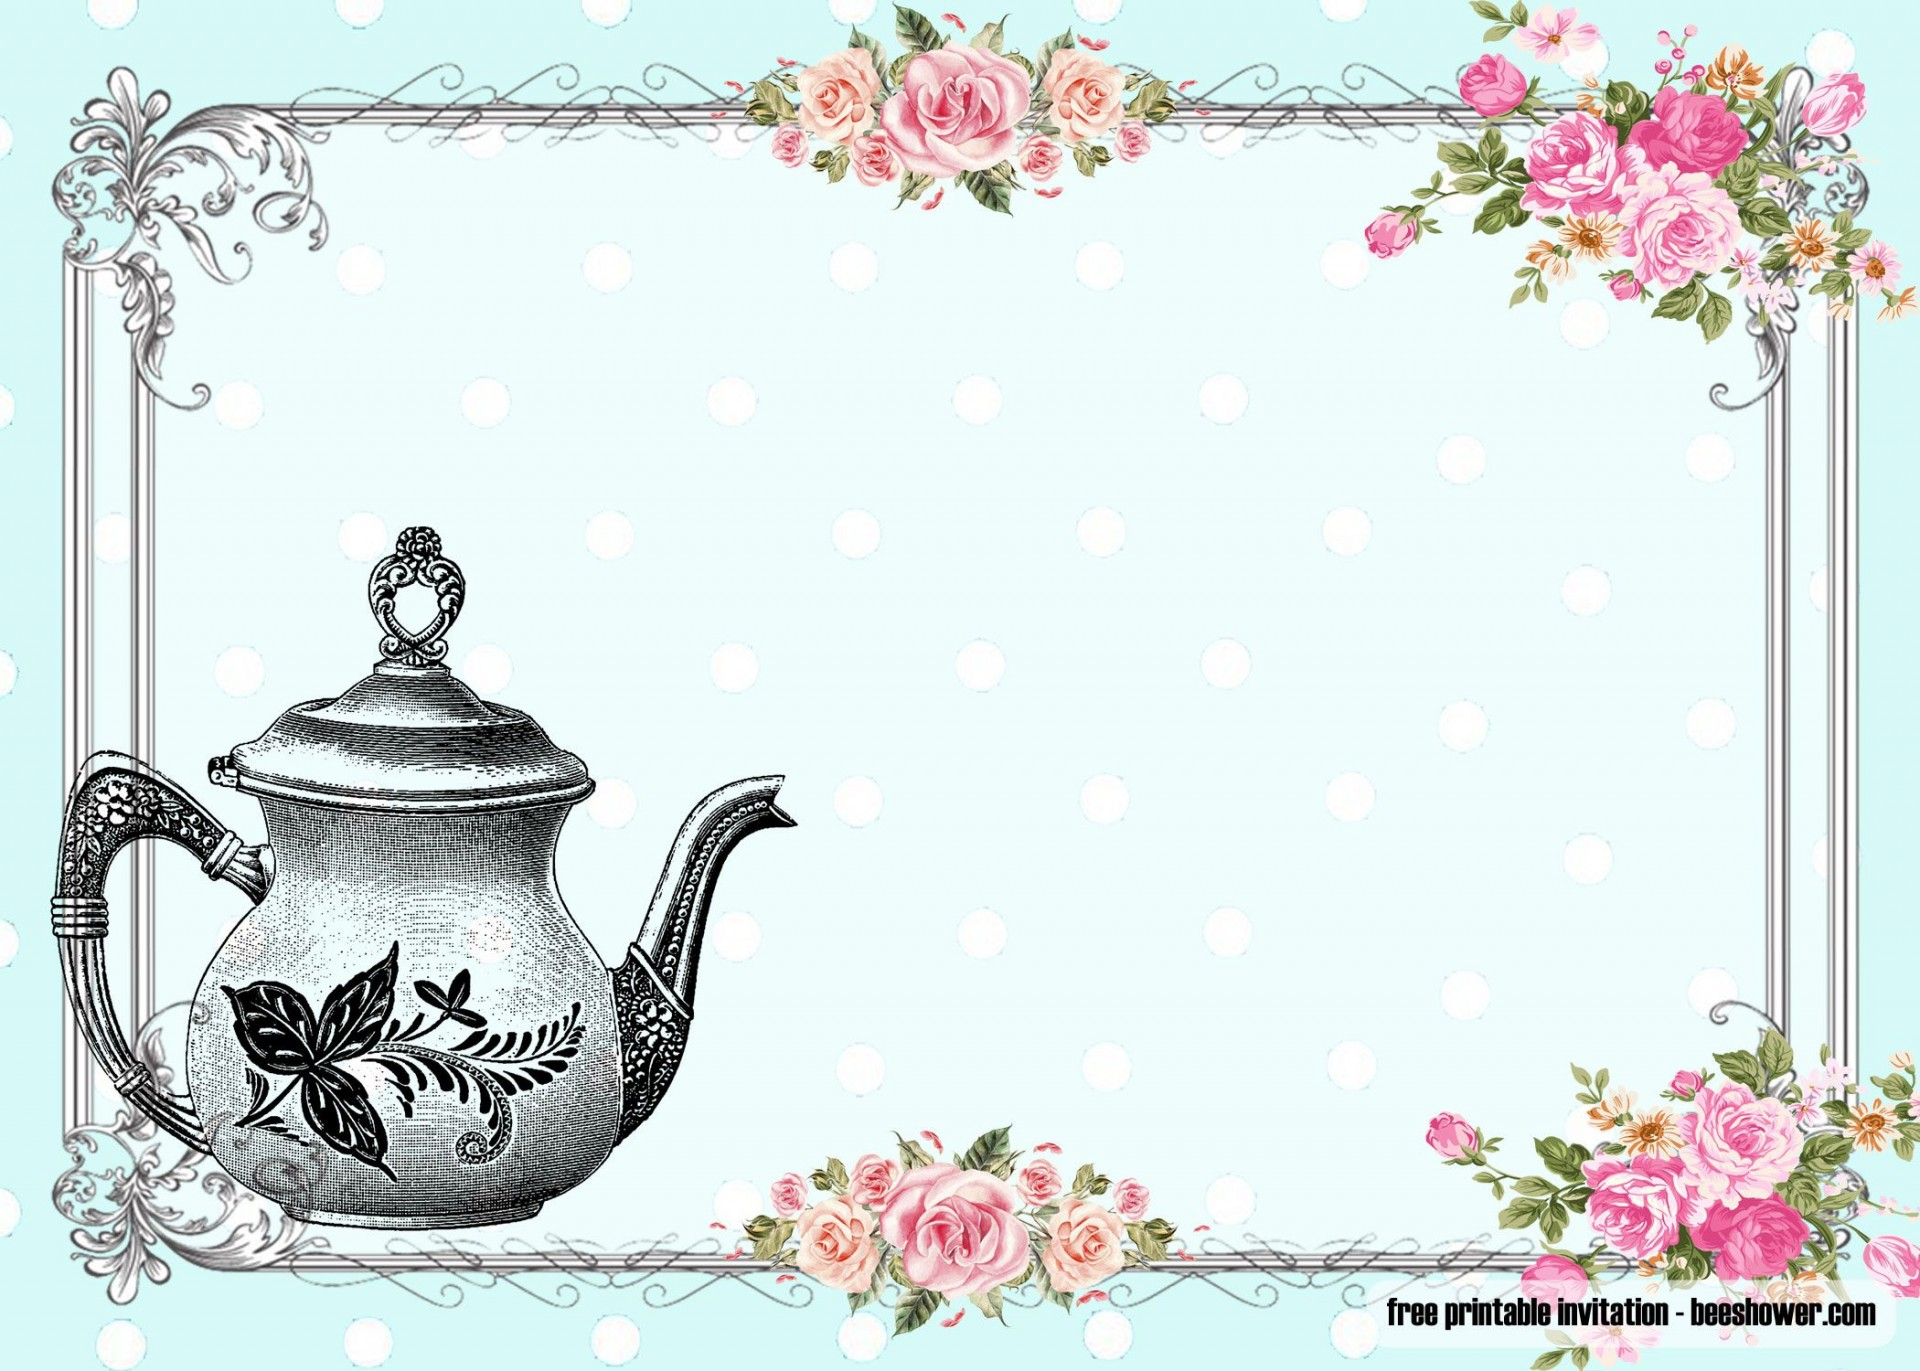 011 Amazing Tea Party Invitation Template Concept  Templates High Free Download Bridal Shower1920